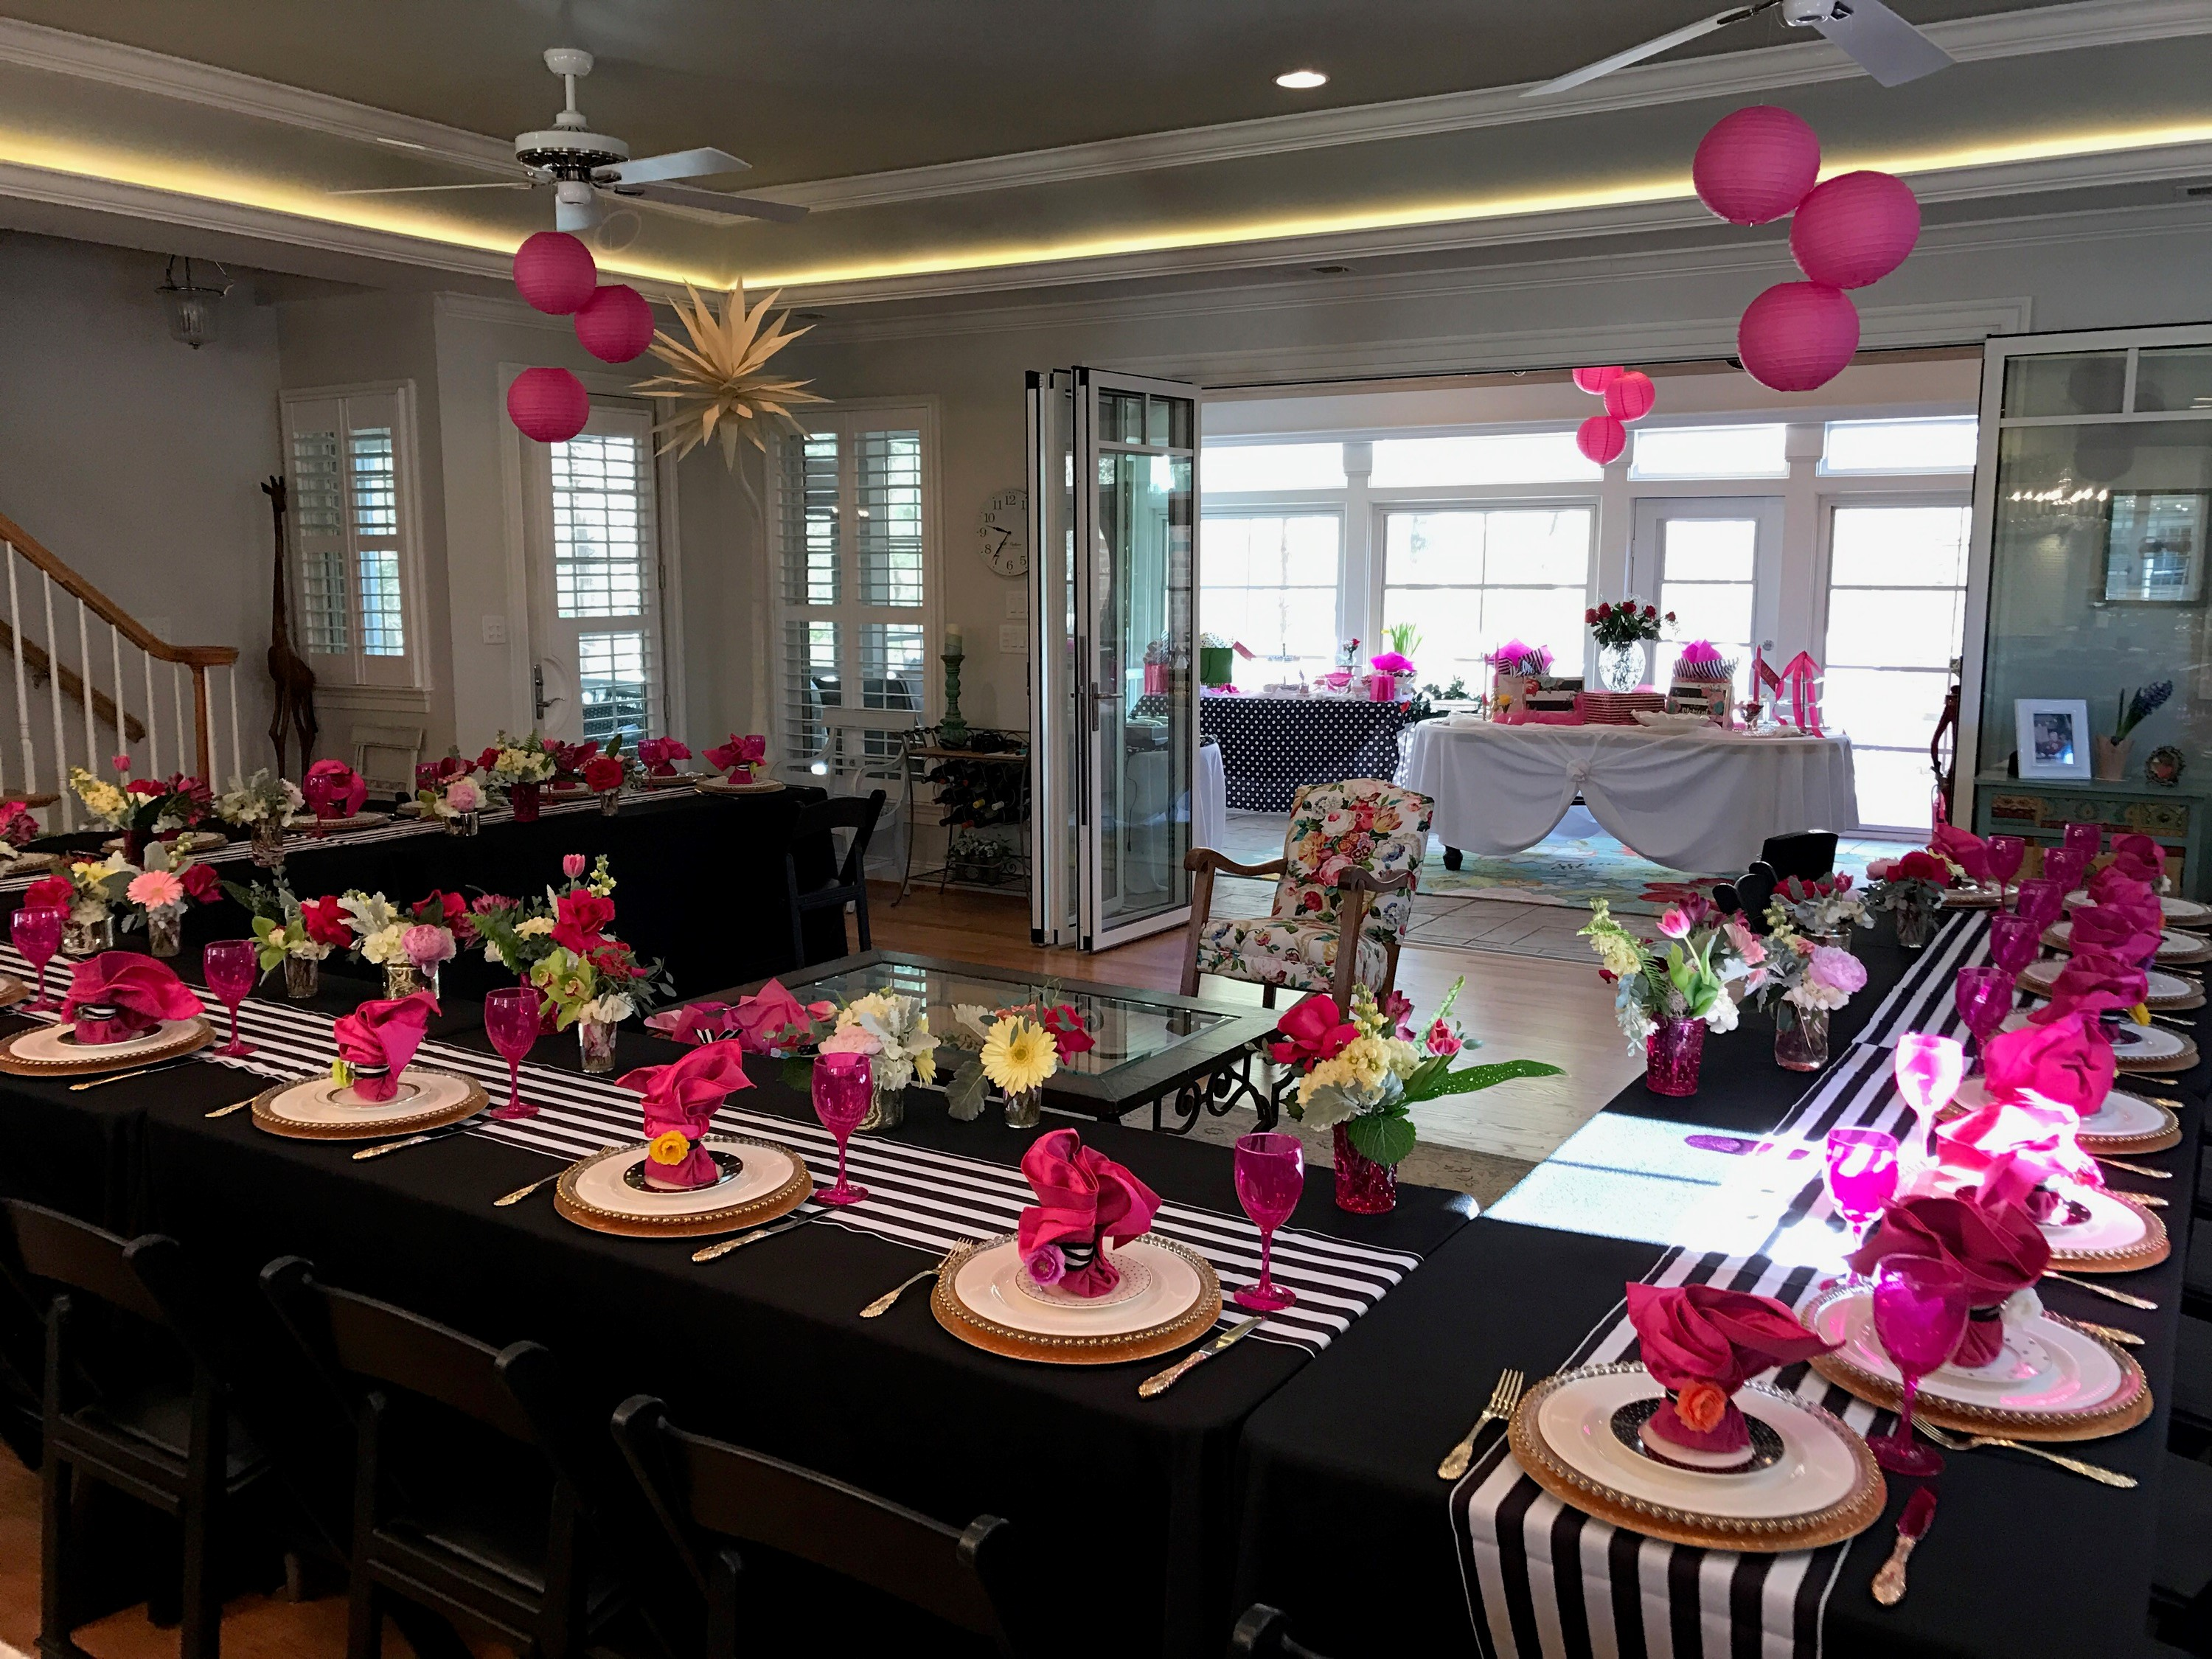 Send Us Your Bridal Shower Photos So We Can Share Email Them To Publisher Vabridemagazine And Be Sure Include What City The Took Place In